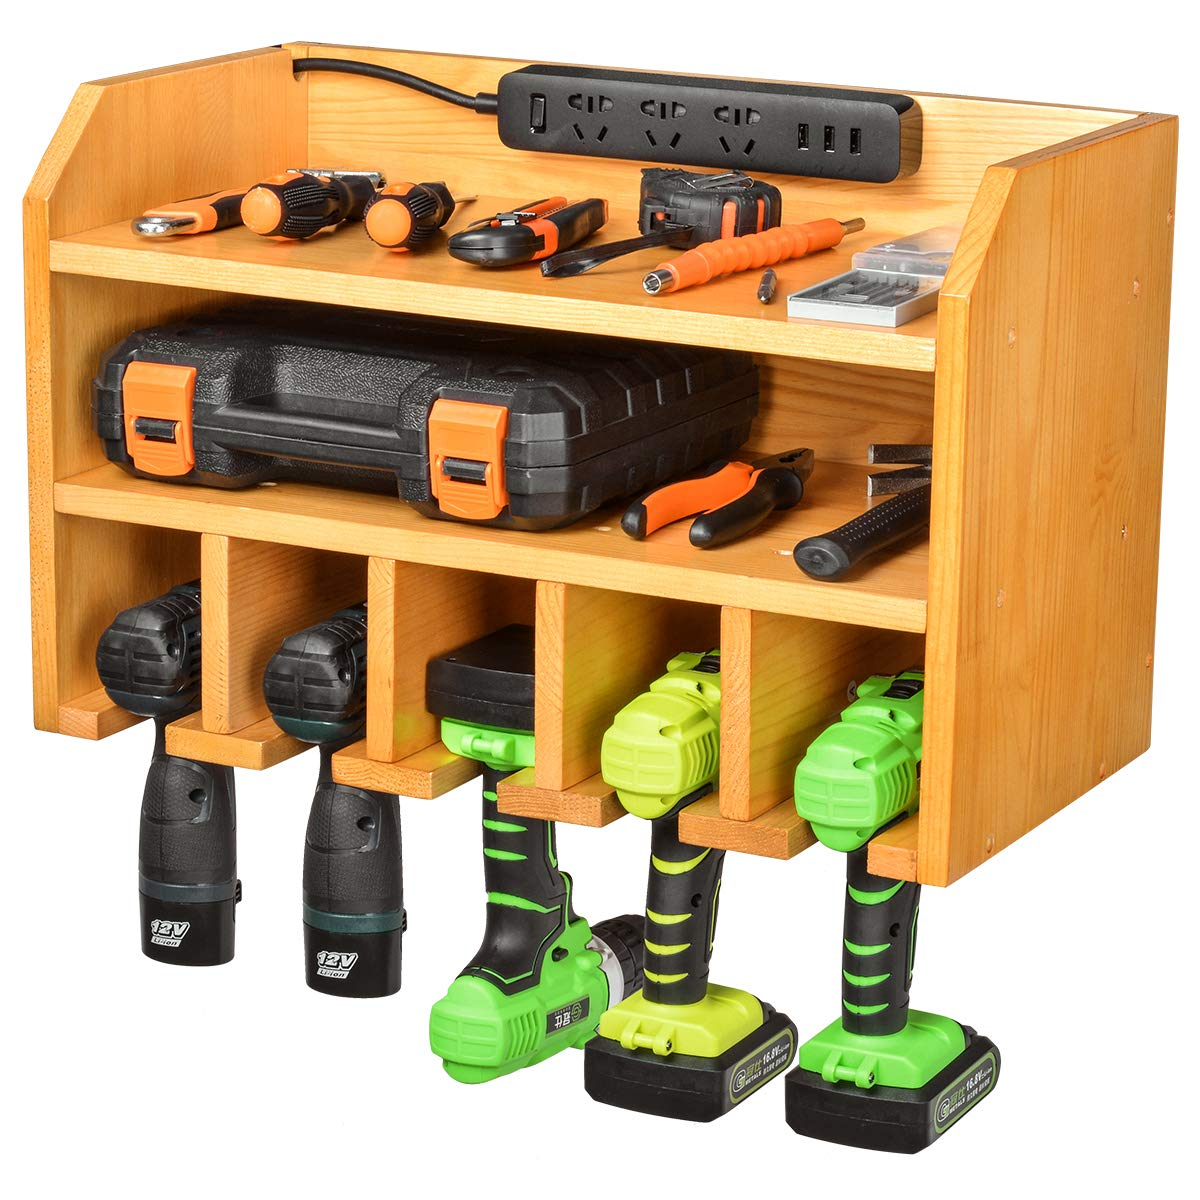 Drill Charging Station | Drill Storage | Wall Mounted Tool Storage Organizer | Power Tool Storage - Power Drill Toolbox Screwdriver Cordless Drill Organizer - Tool, Parts Craft Organizer Wooden by XCSOURCE